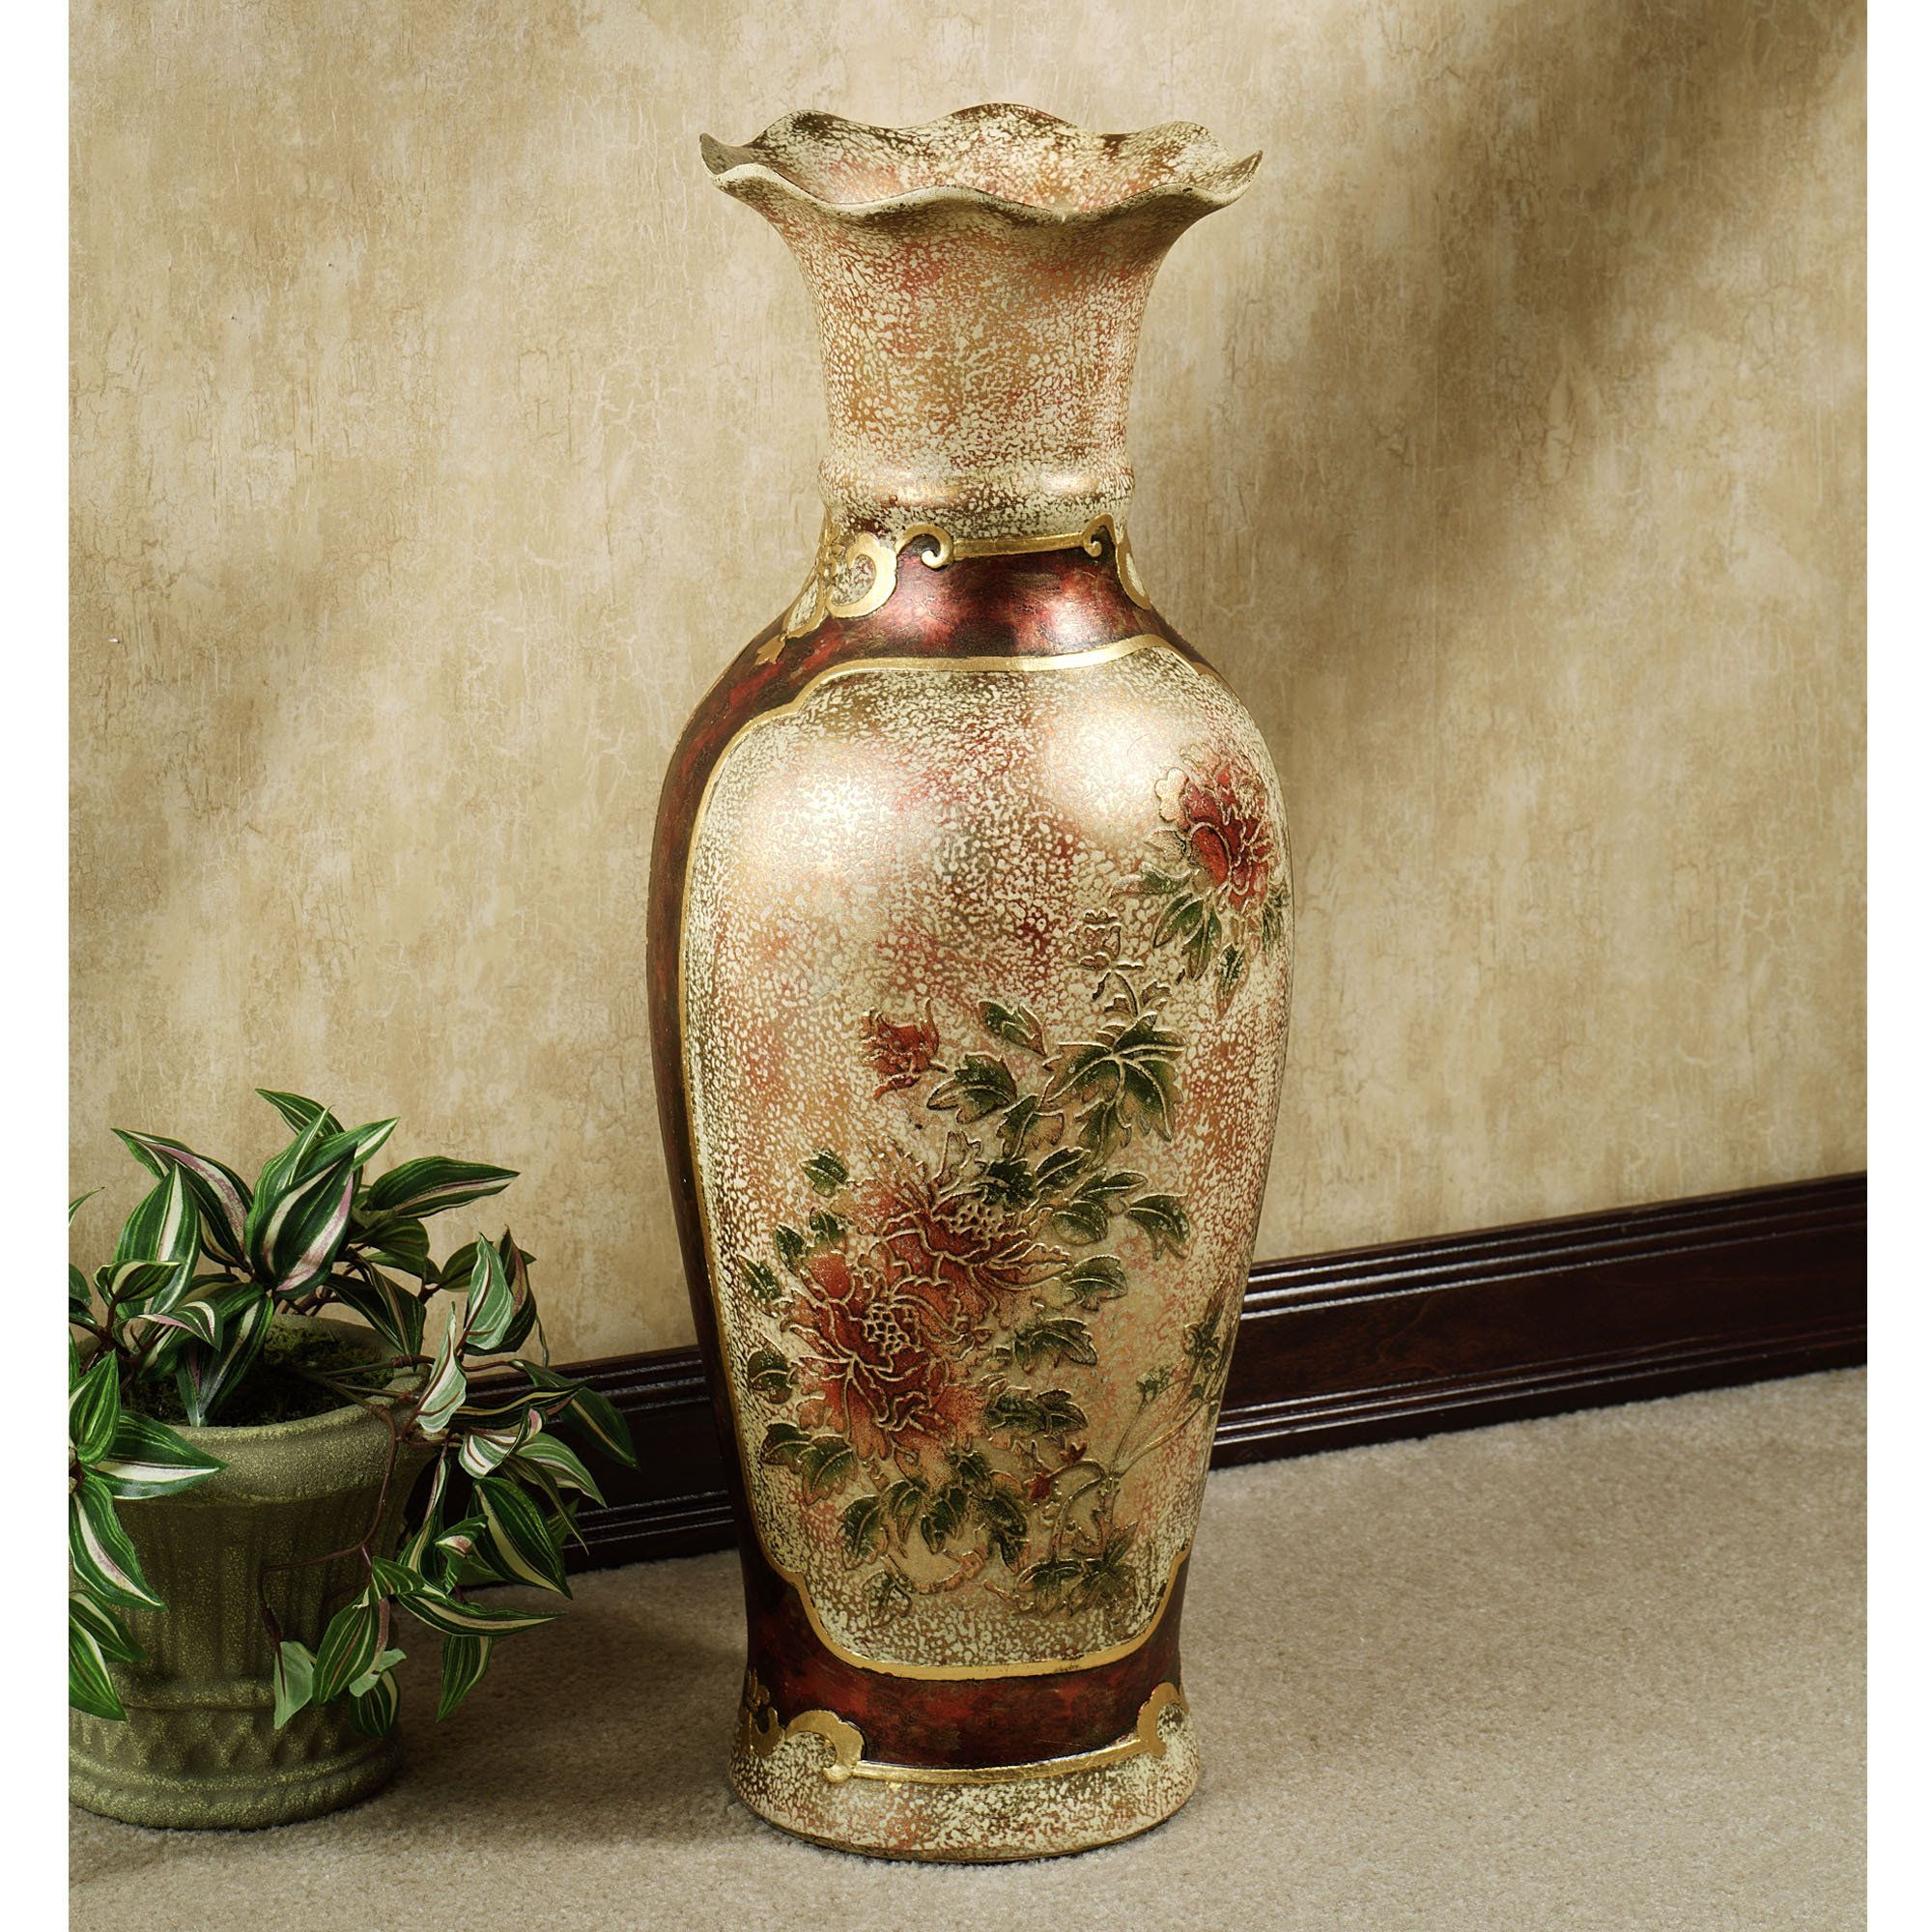 Elysian blooming floor vase urn porcelain and decorating a combination of beautiful imagery and attractive design make this elysian blooming vase an appealing choice reviewsmspy